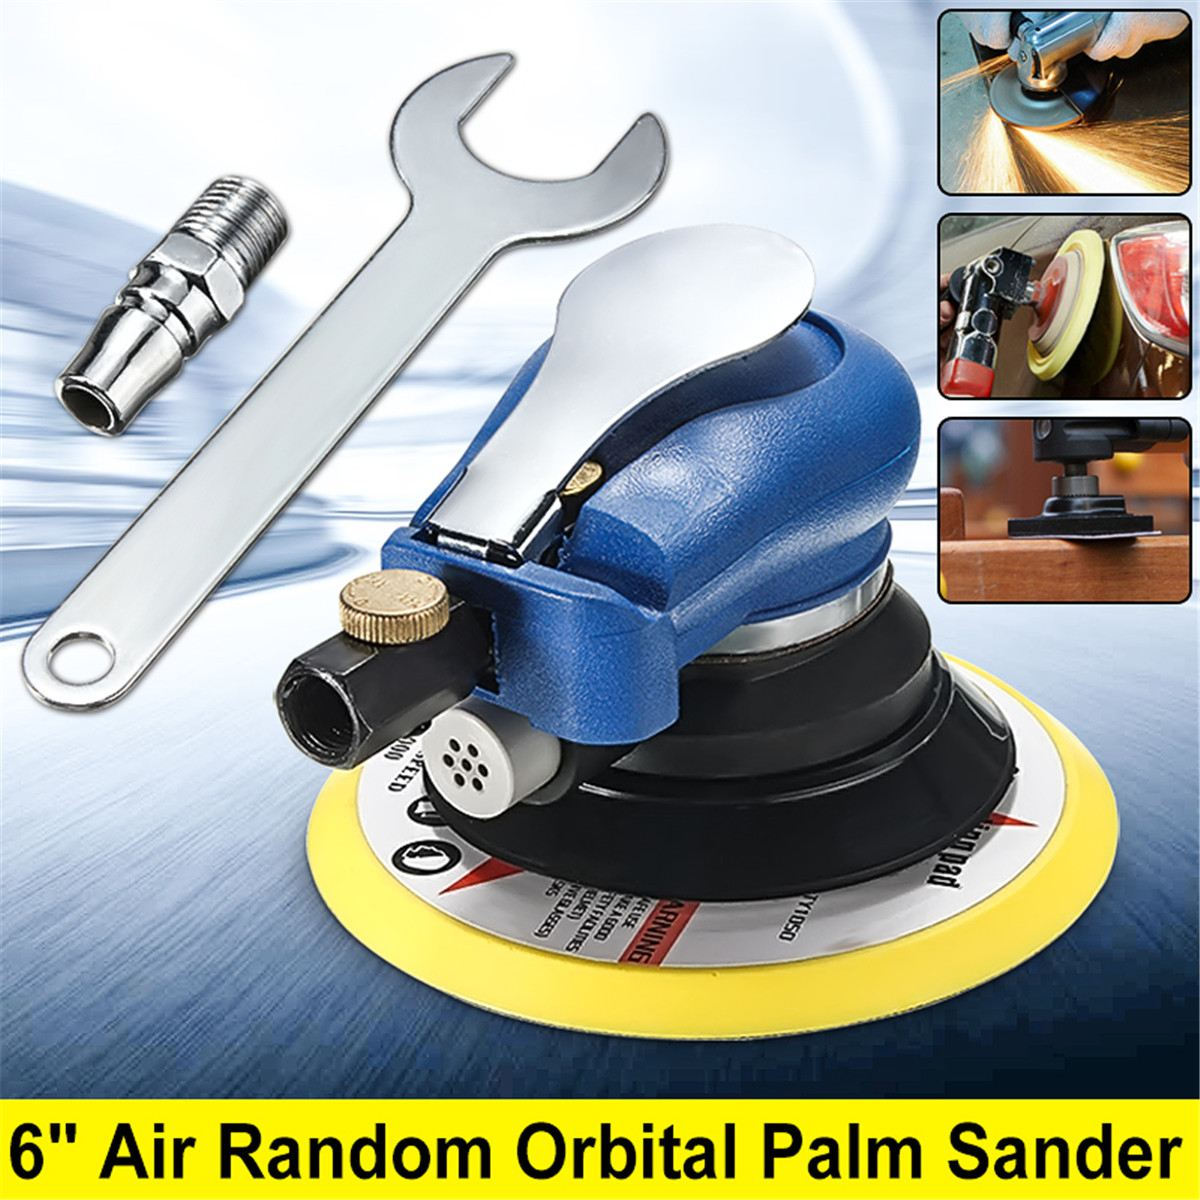 6 Inch 10000rpm Round Air Orbital Sander Random for Sander 150mm Dualable Action Auto Body Orbit DA Sanding Hand Tool